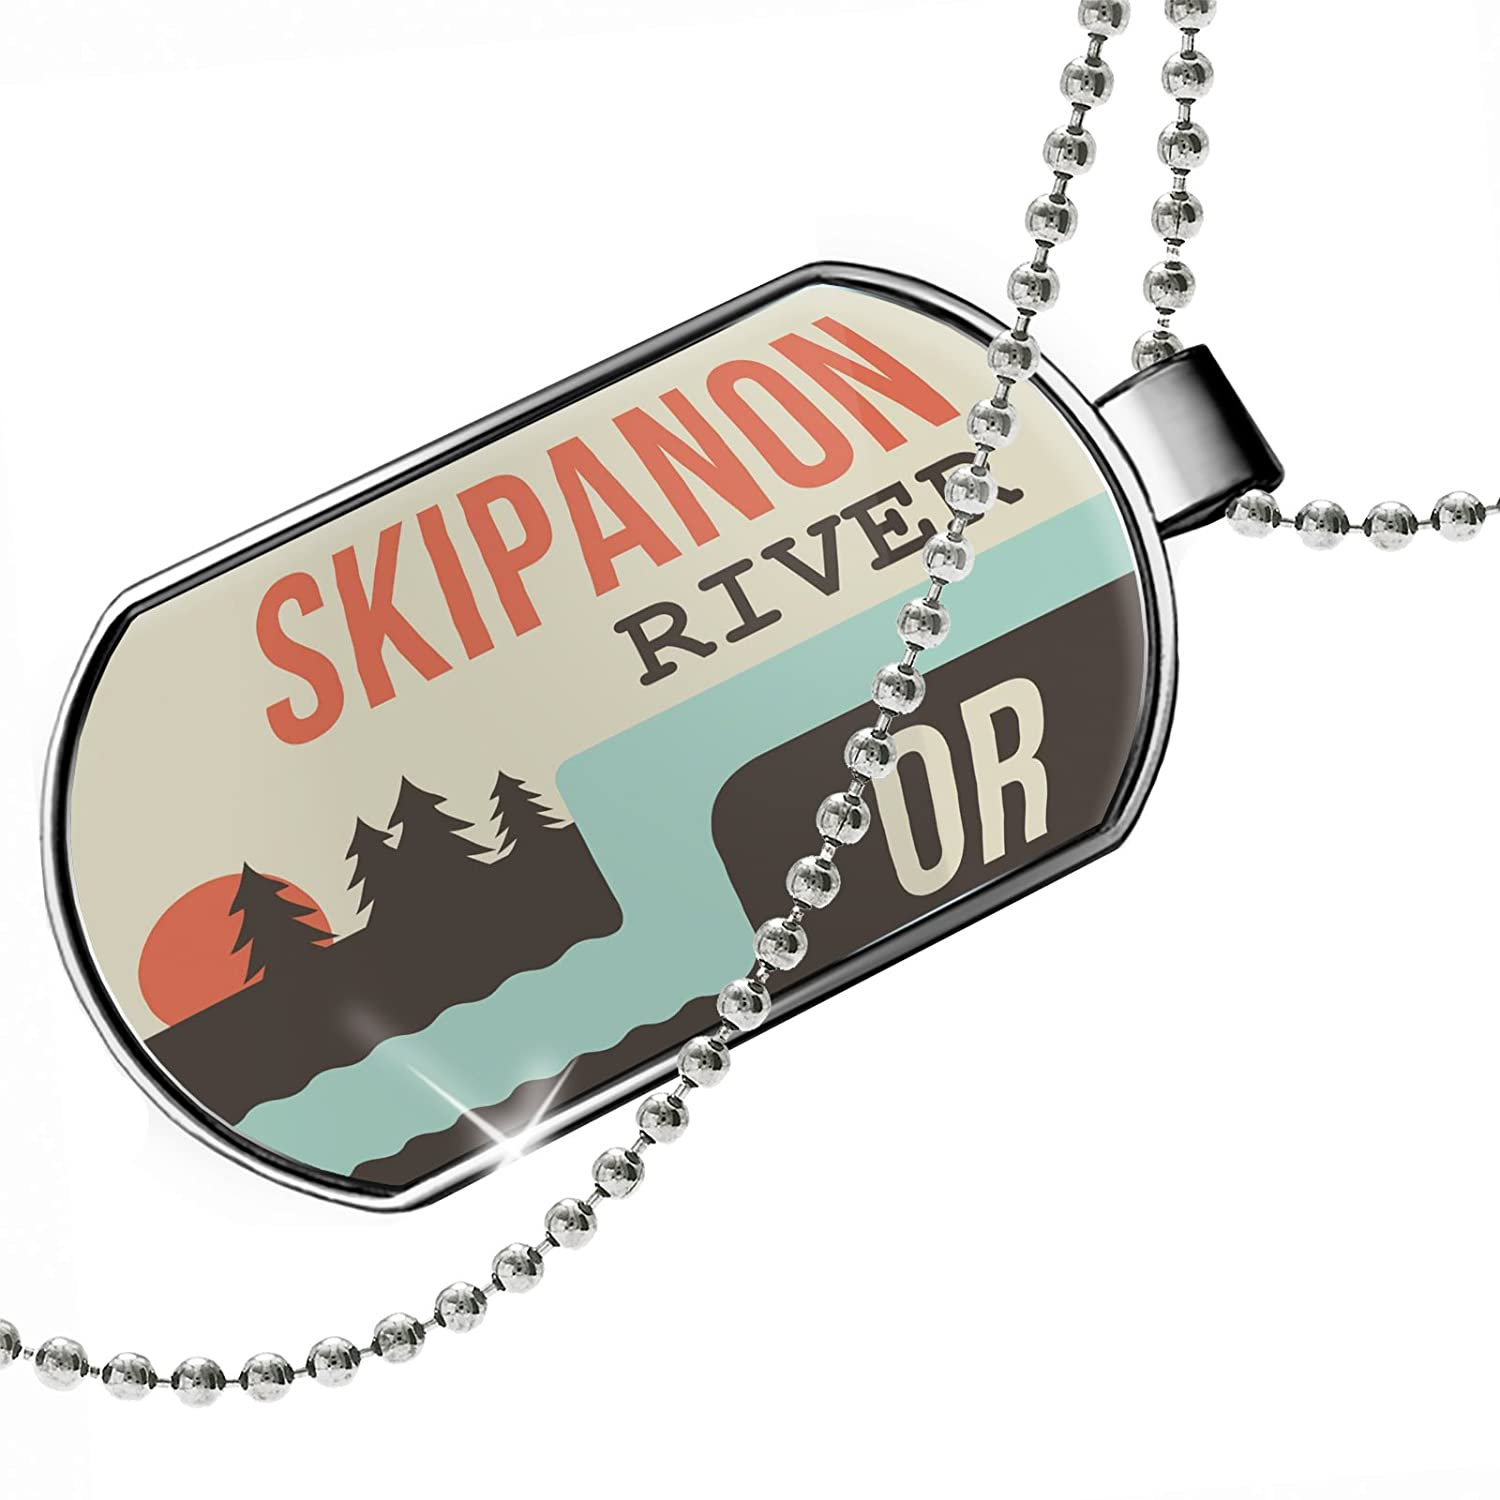 Oregon Dogtag Necklace NEONBLOND Personalized Name Engraved USA Rivers Skipanon River